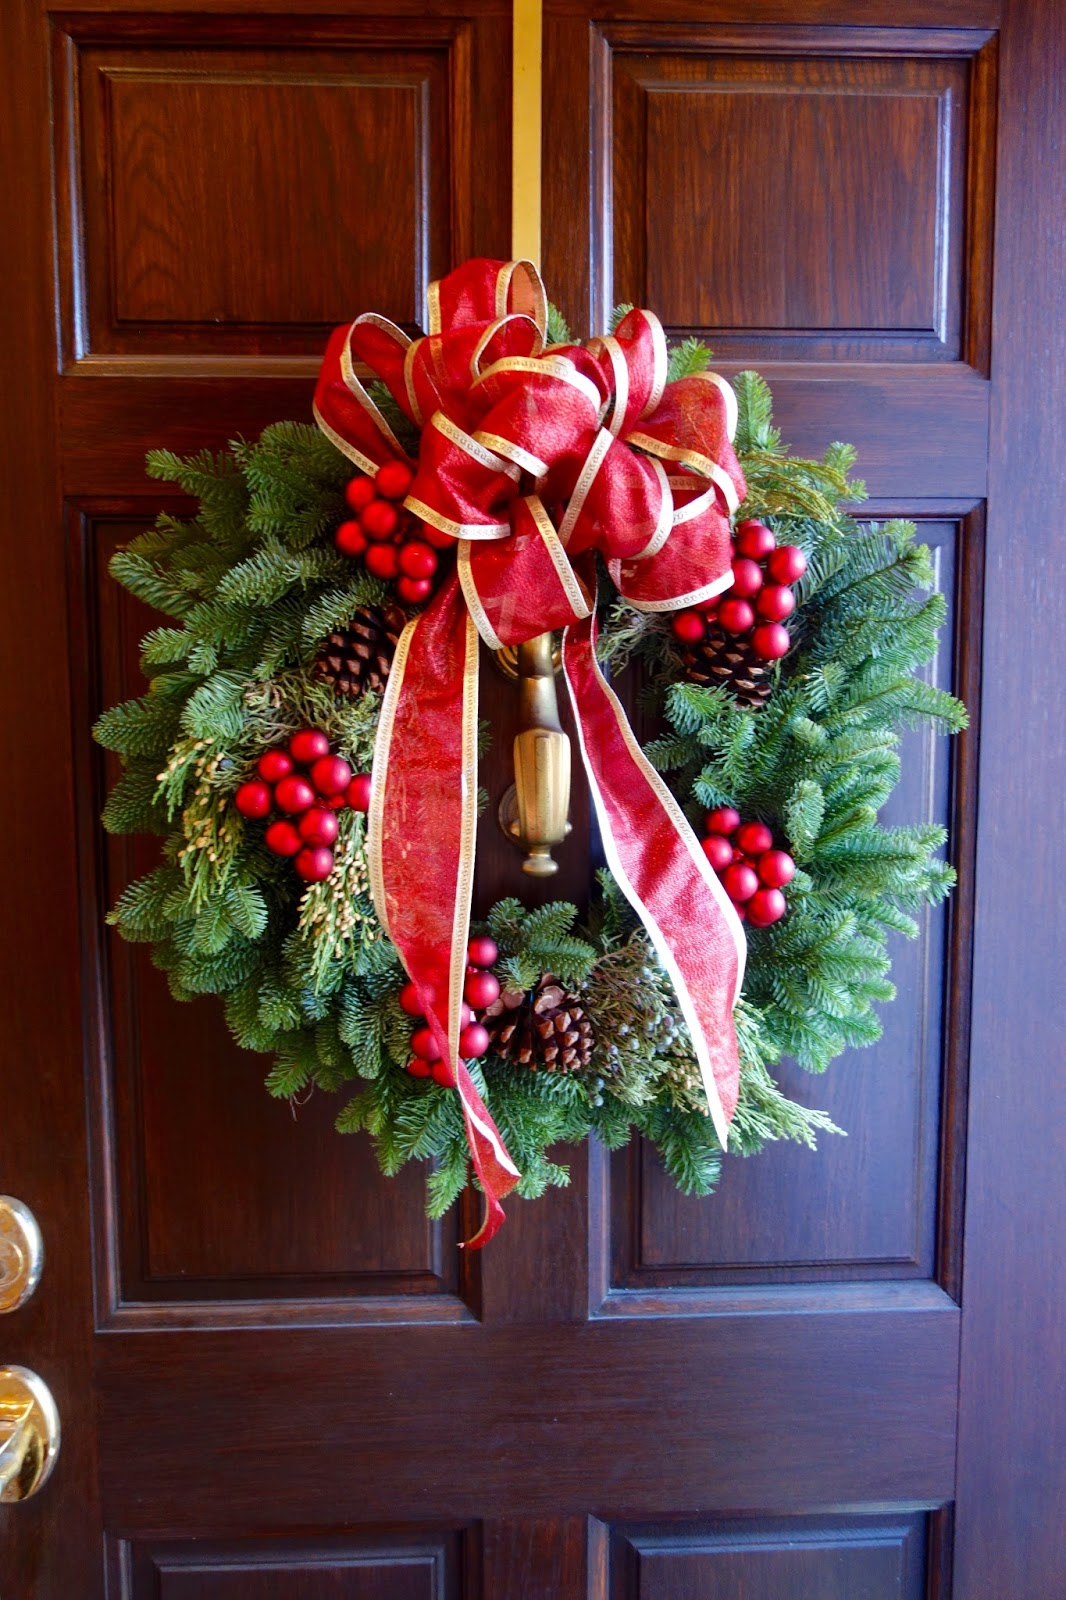 Gracious Interiors: Merry Christmas from Our House to Yours